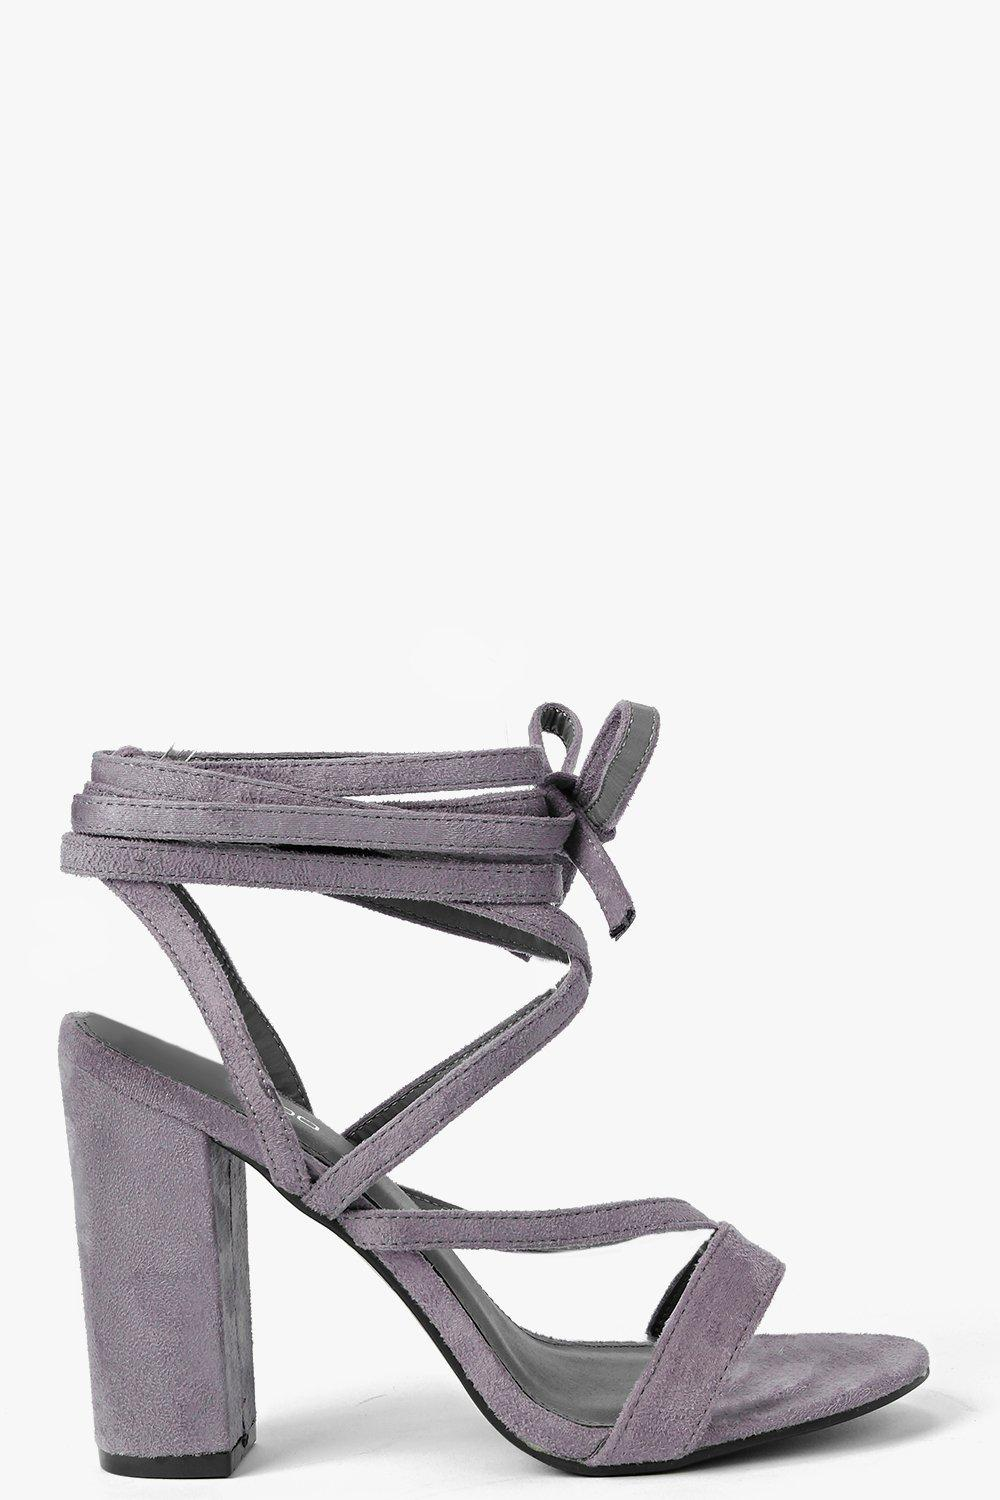 Wrap Strap Two Part Block Heel grey